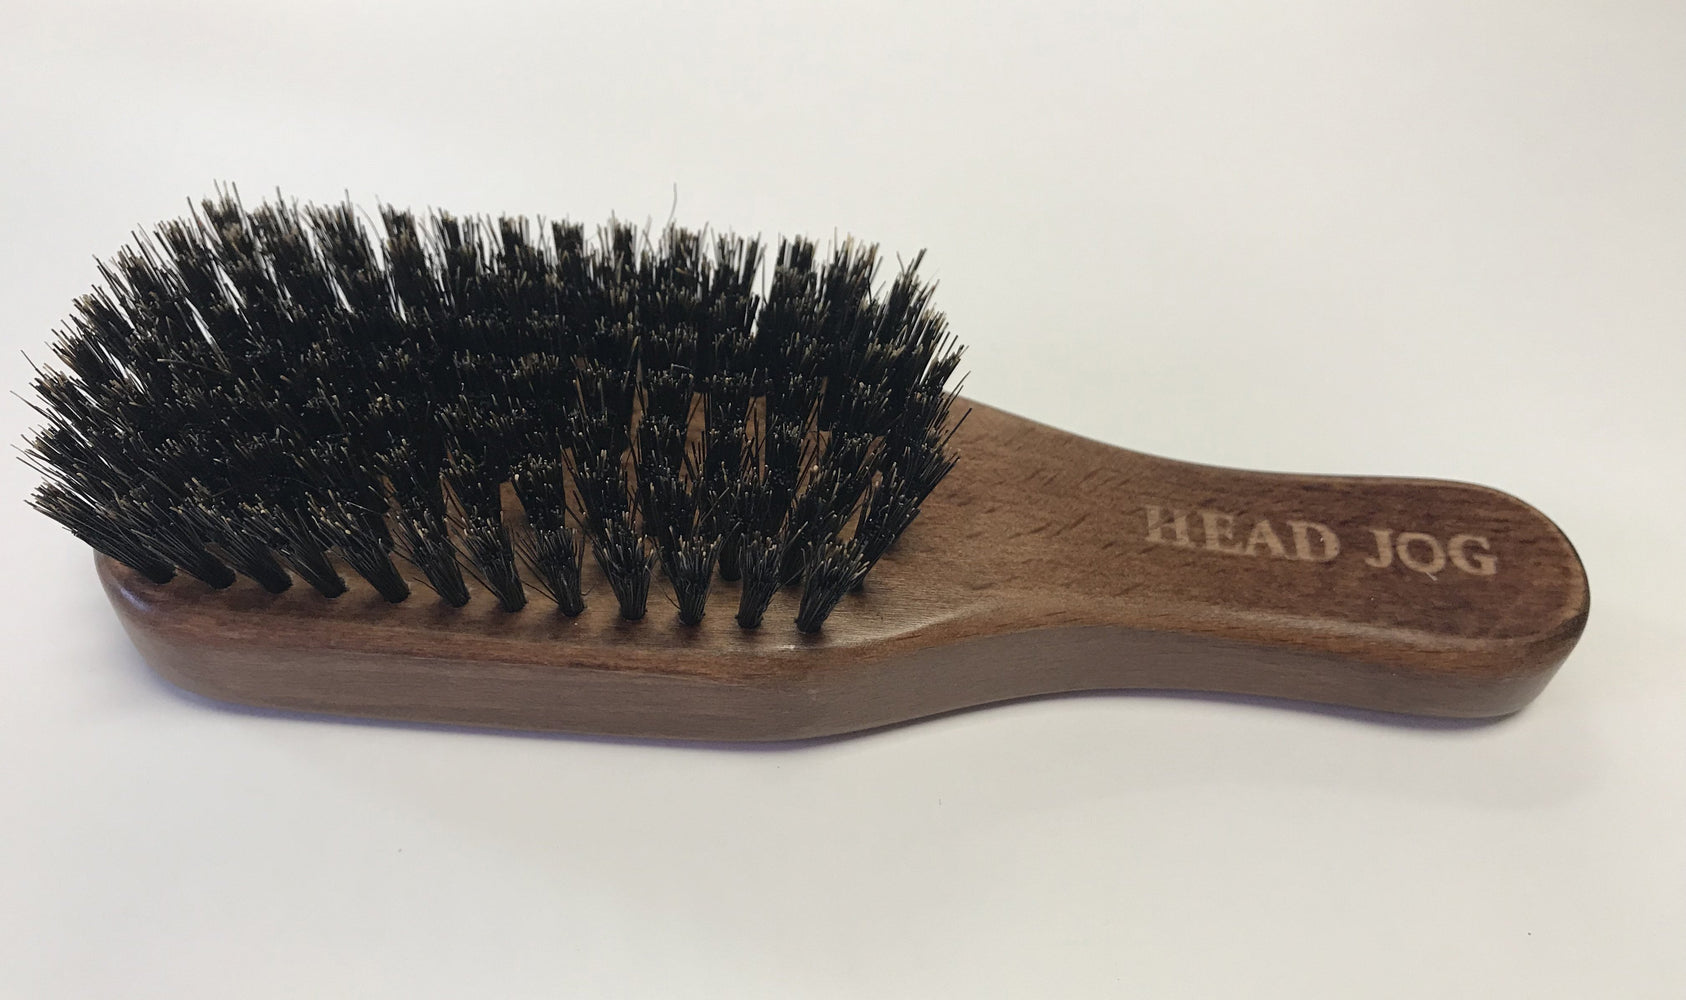 Head Jog - Wooden Fade Brush